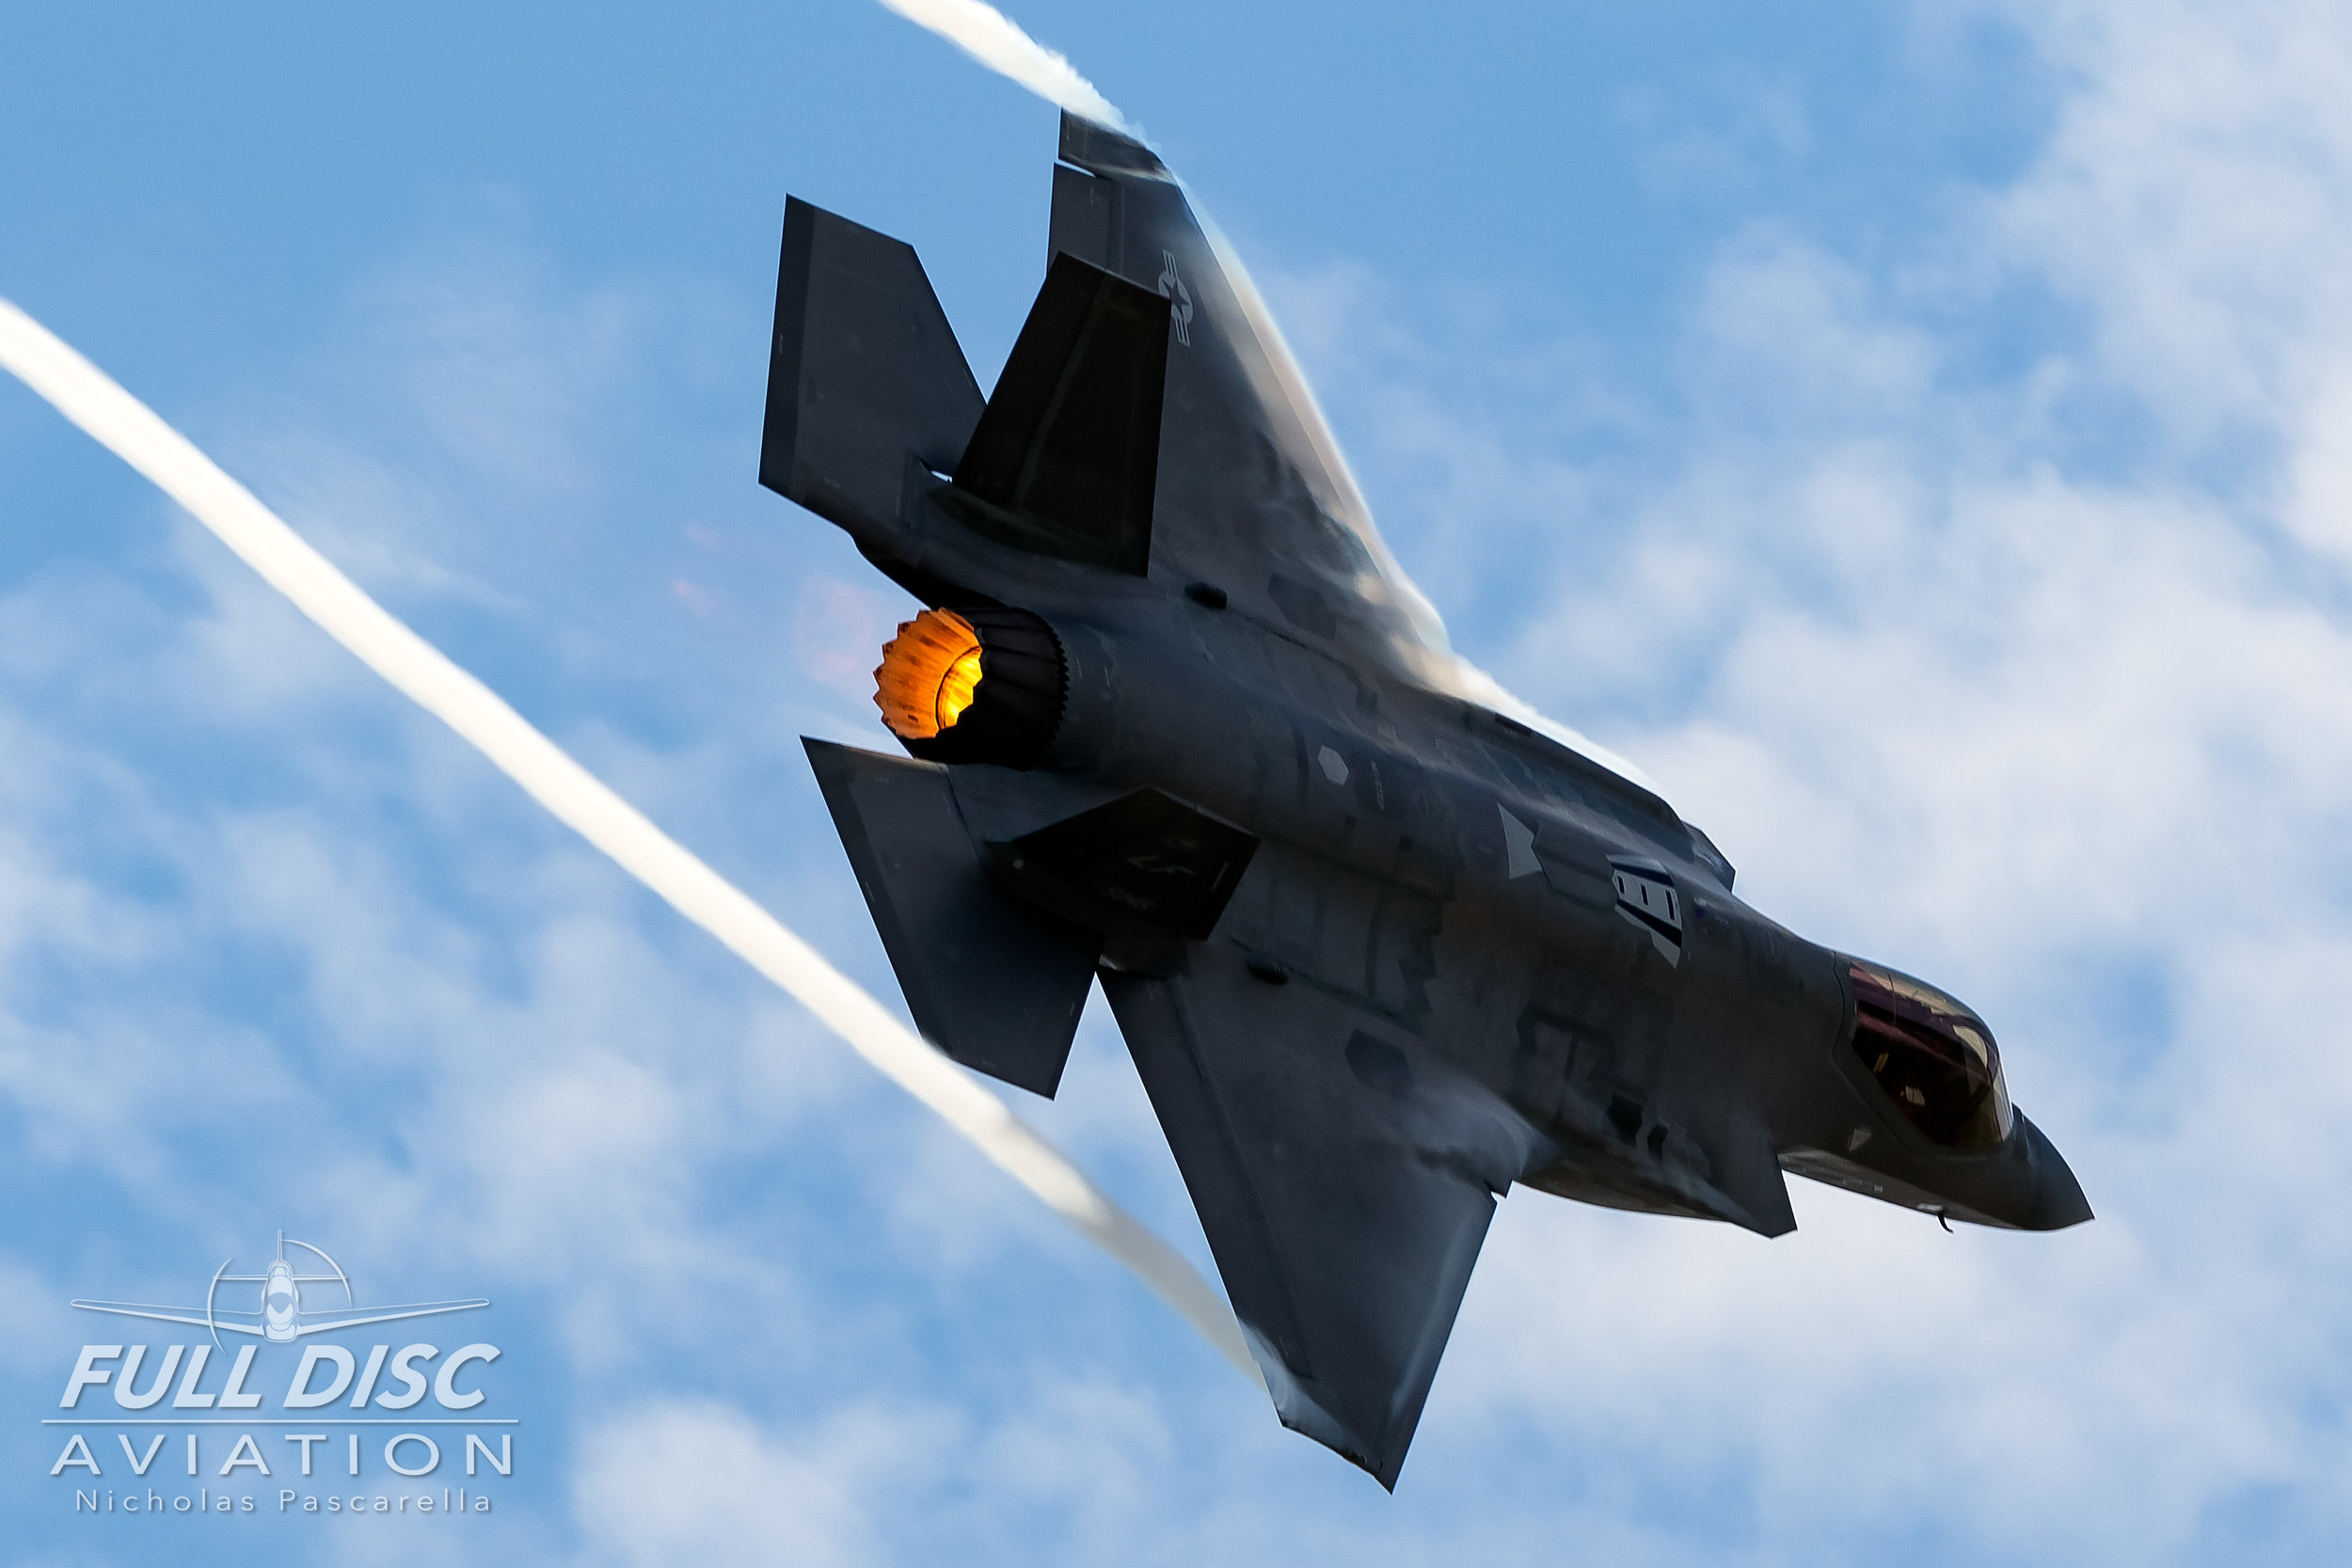 f35_turnandburn_wingsoverwayne_nicholaspascarella_fulldiscavation_aviation_airshow.jpg